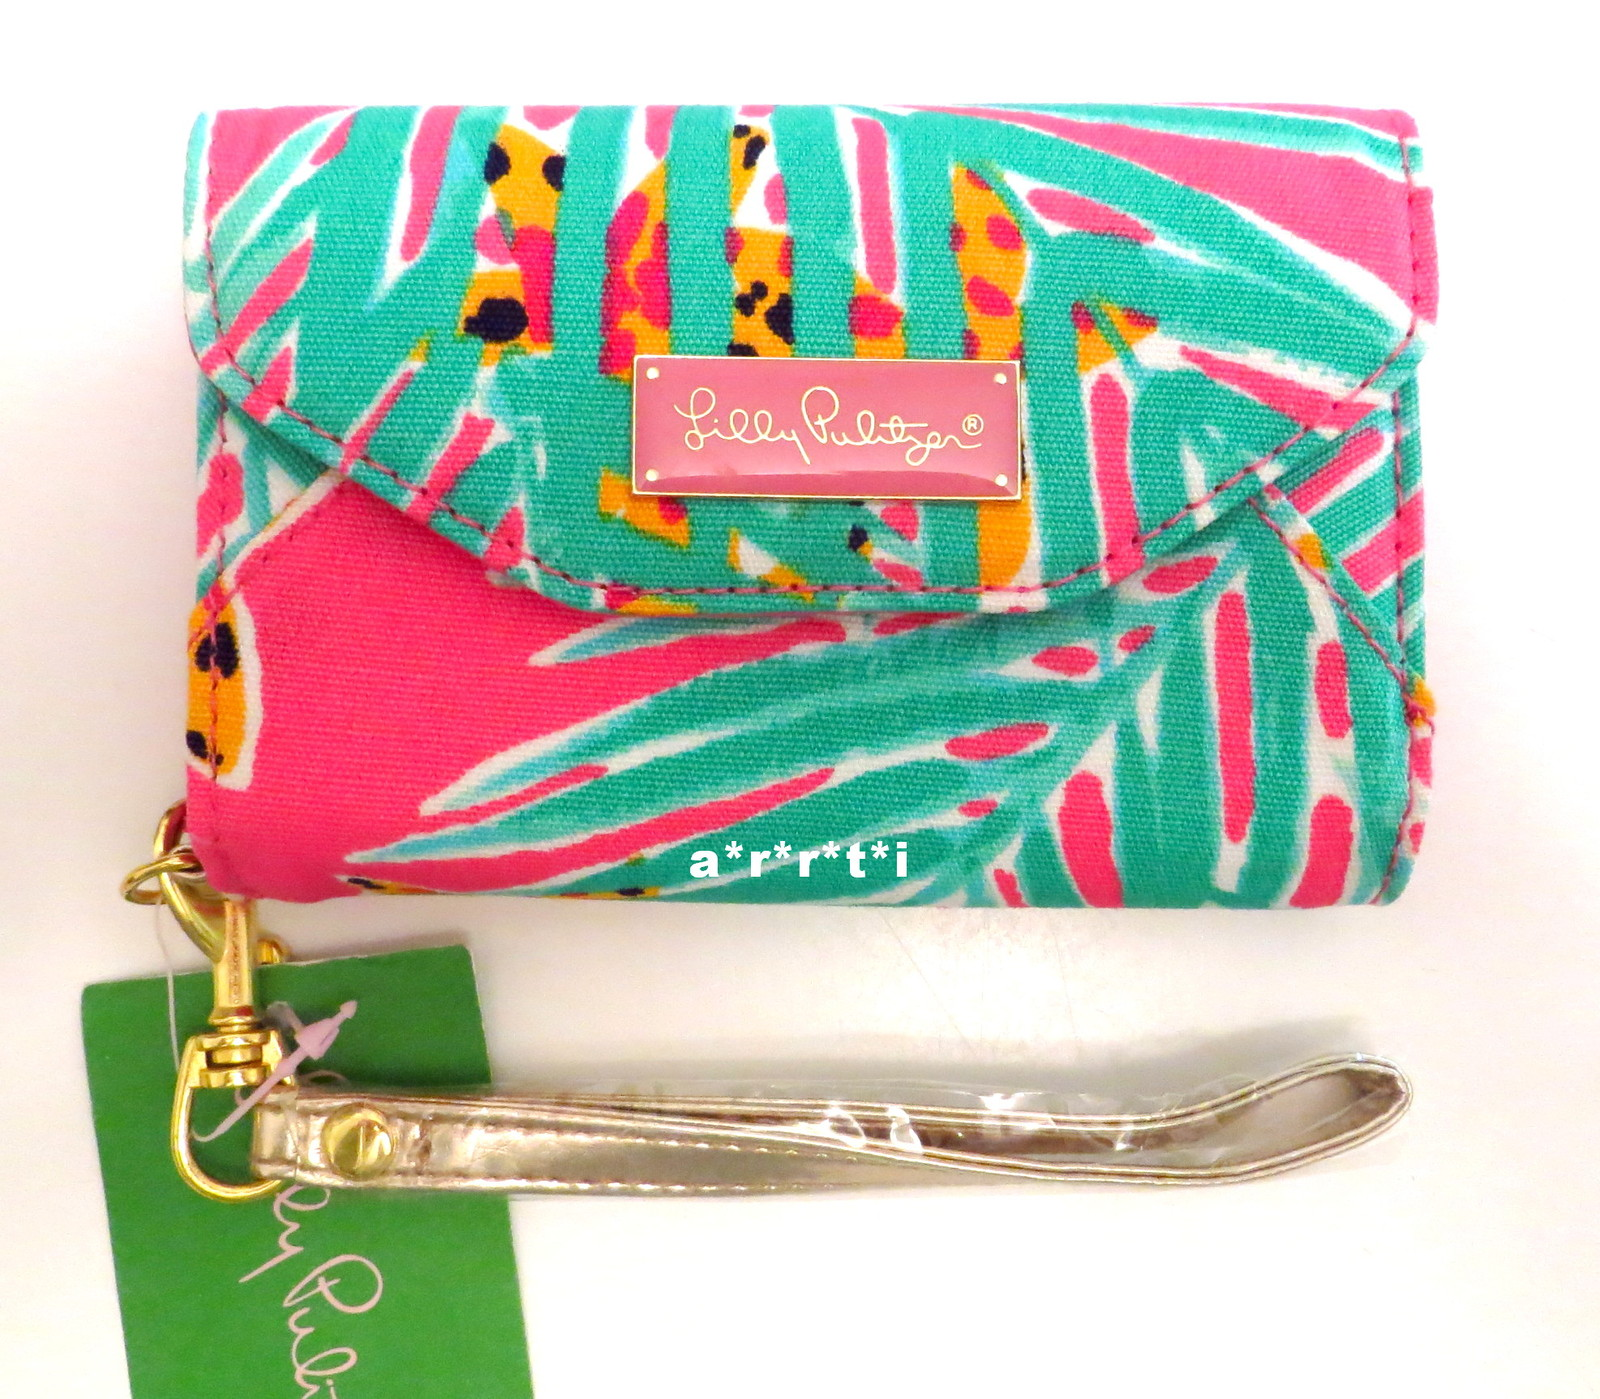 Lilly Pulitzer Wristlet: 1 Listing